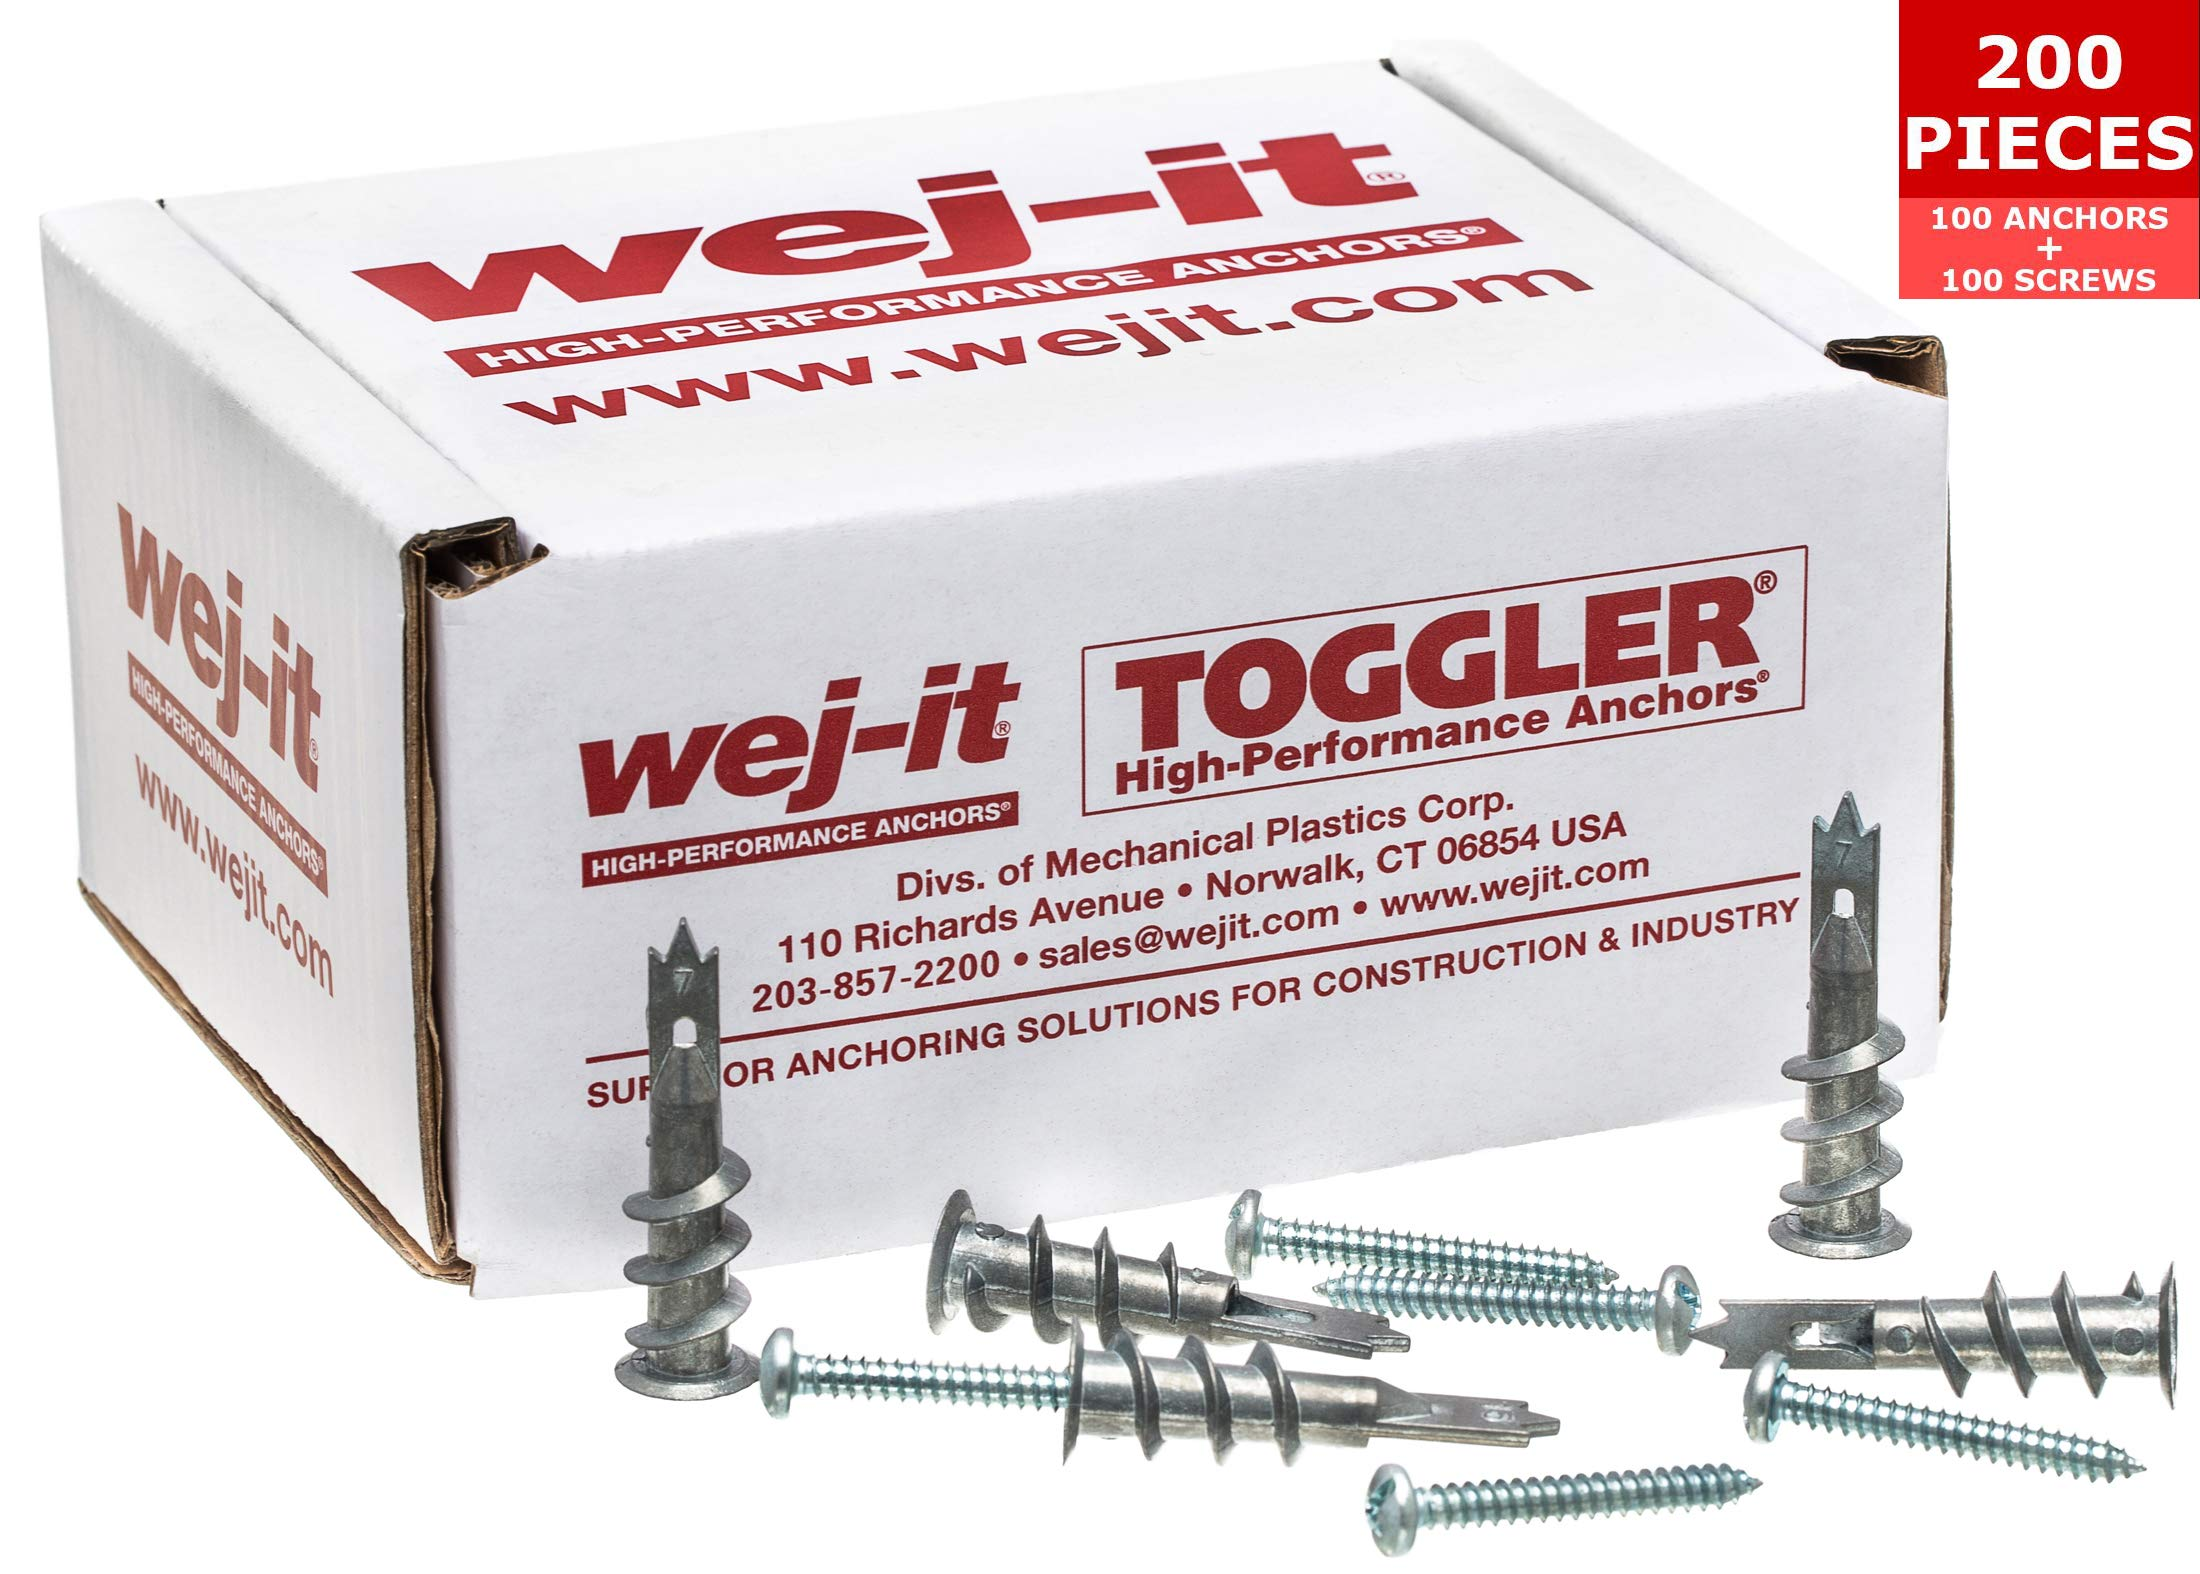 Wej-It Self-Drilling Drywall Anchors - Industrial Quality Screw & Wallplug Kit - Quick & Hassle Free Wall Fastening & Mounting - 200 Pcs (100 Anchors and 100 Screws) (Zinc Alloy - Metal)